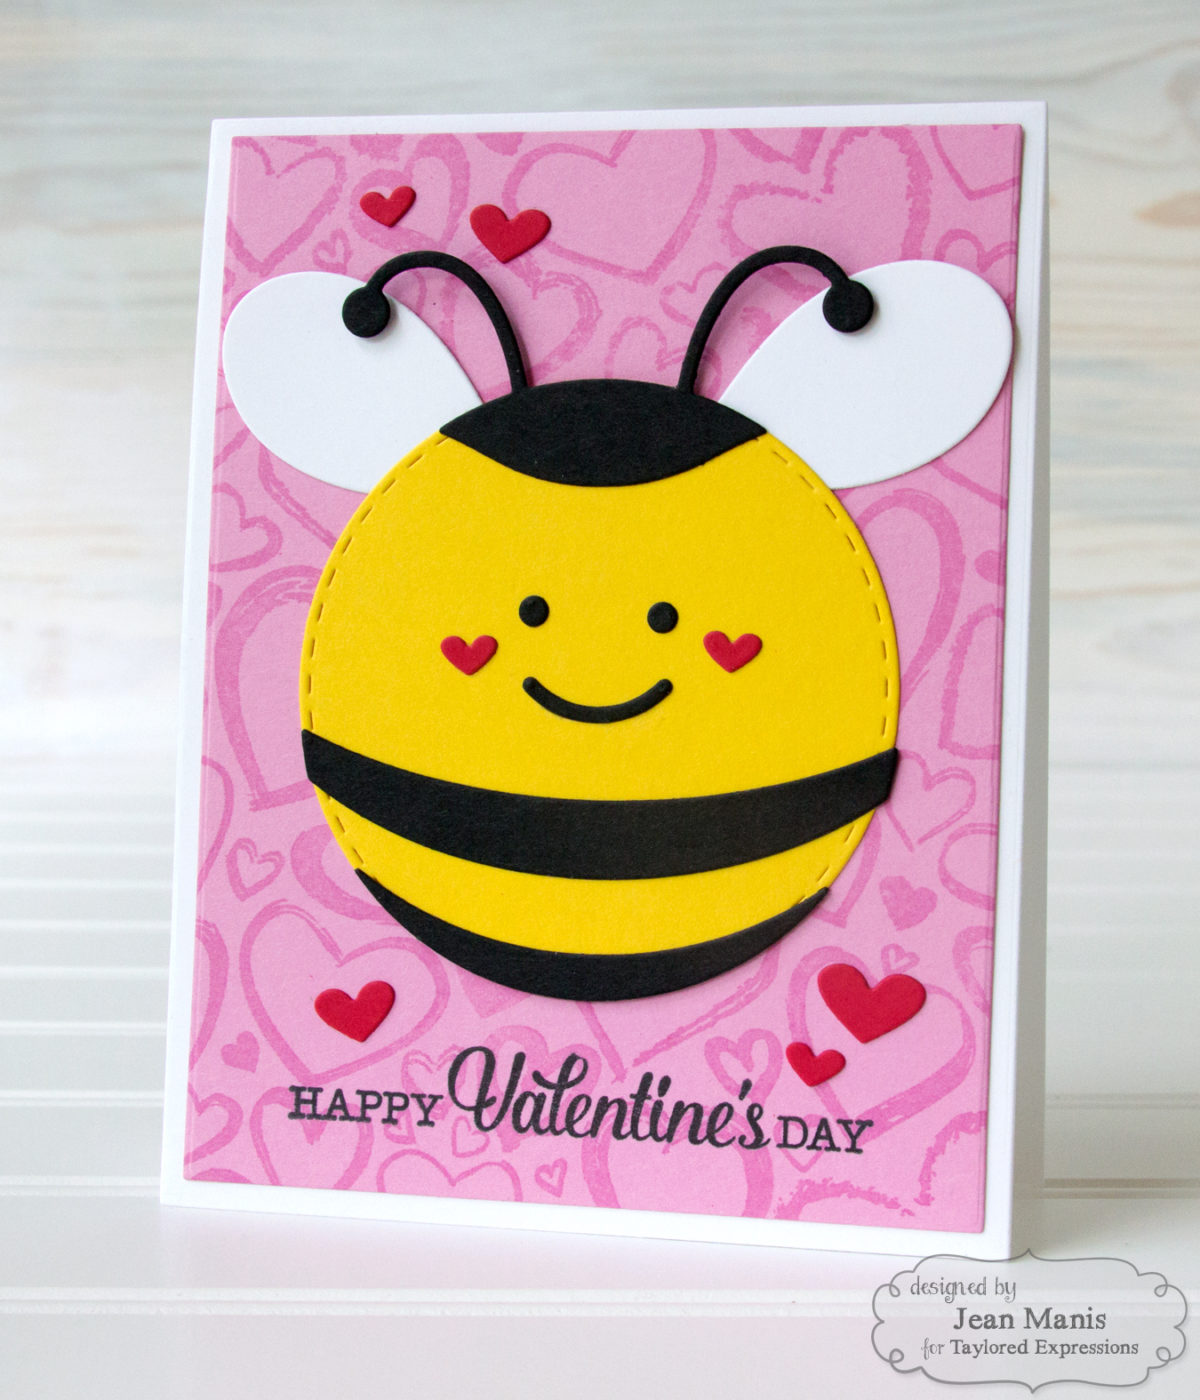 Taylored Expressions – Bee Mine! – Die-cut Valentine